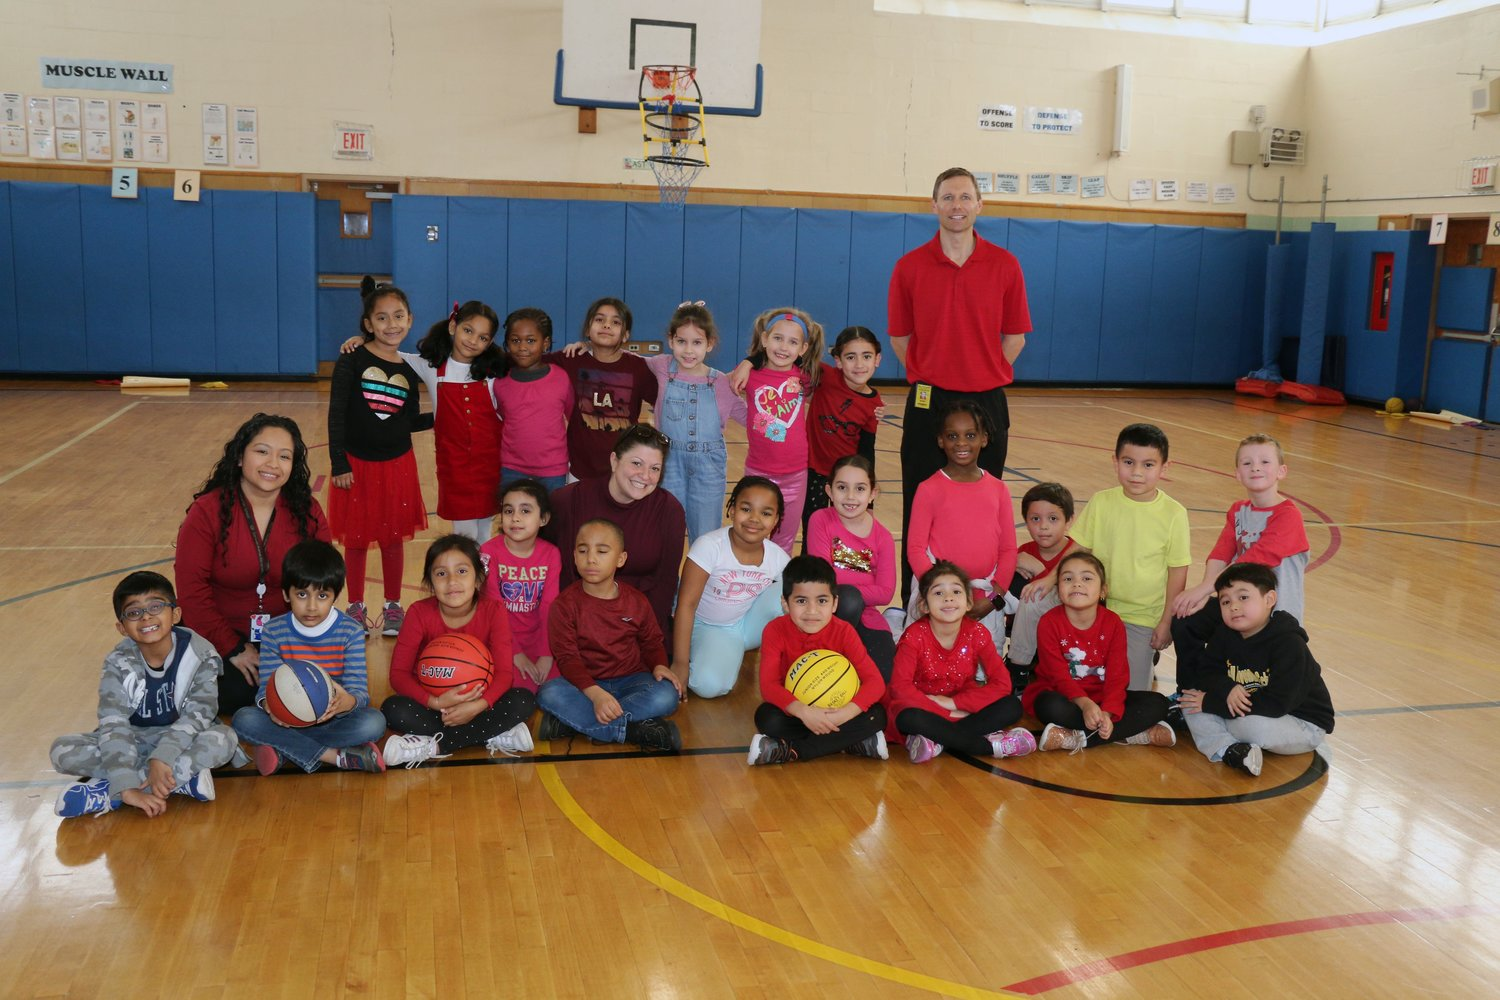 Students at Cornwell Avenue Elementary School celebrated their fundraising efforts for Hoops for Heart during their gym classes on Feb. 27.